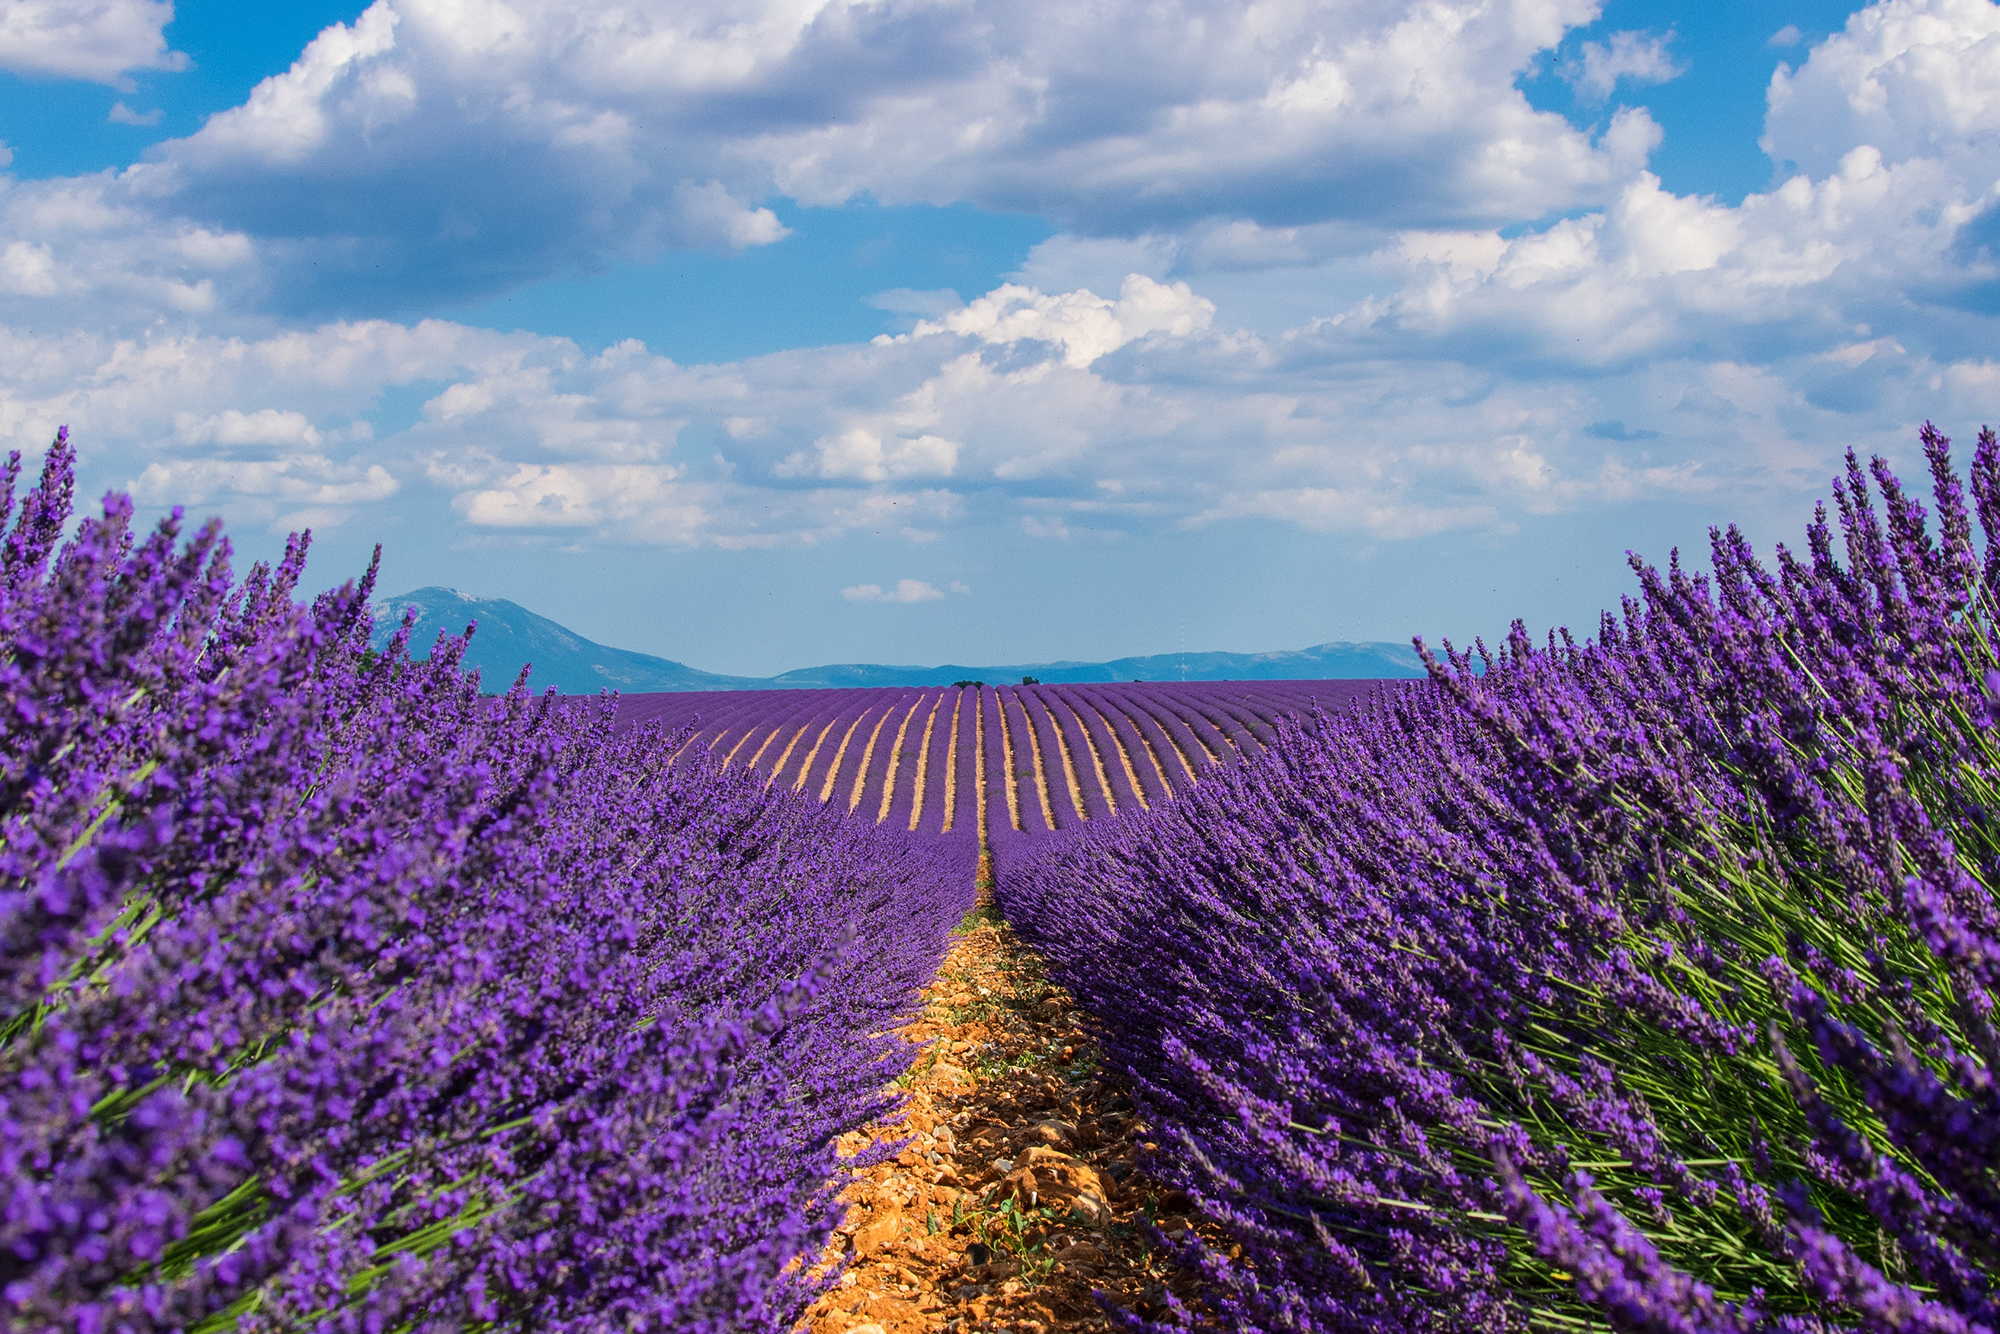 Field of lavender with a sunny overcast sky in the background